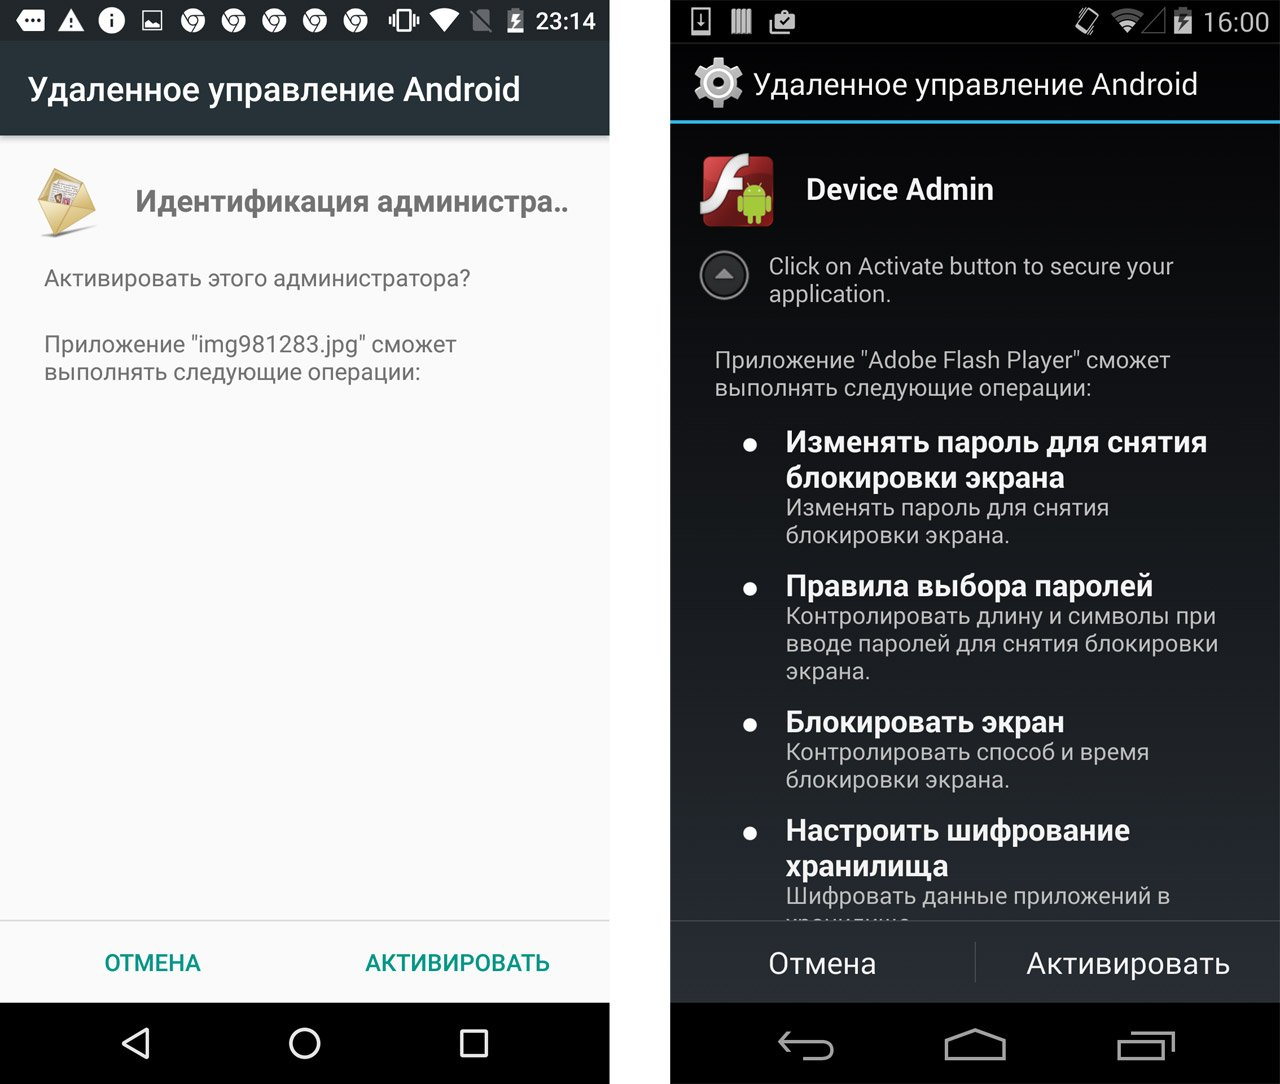 device-admin-request-ru.jpg